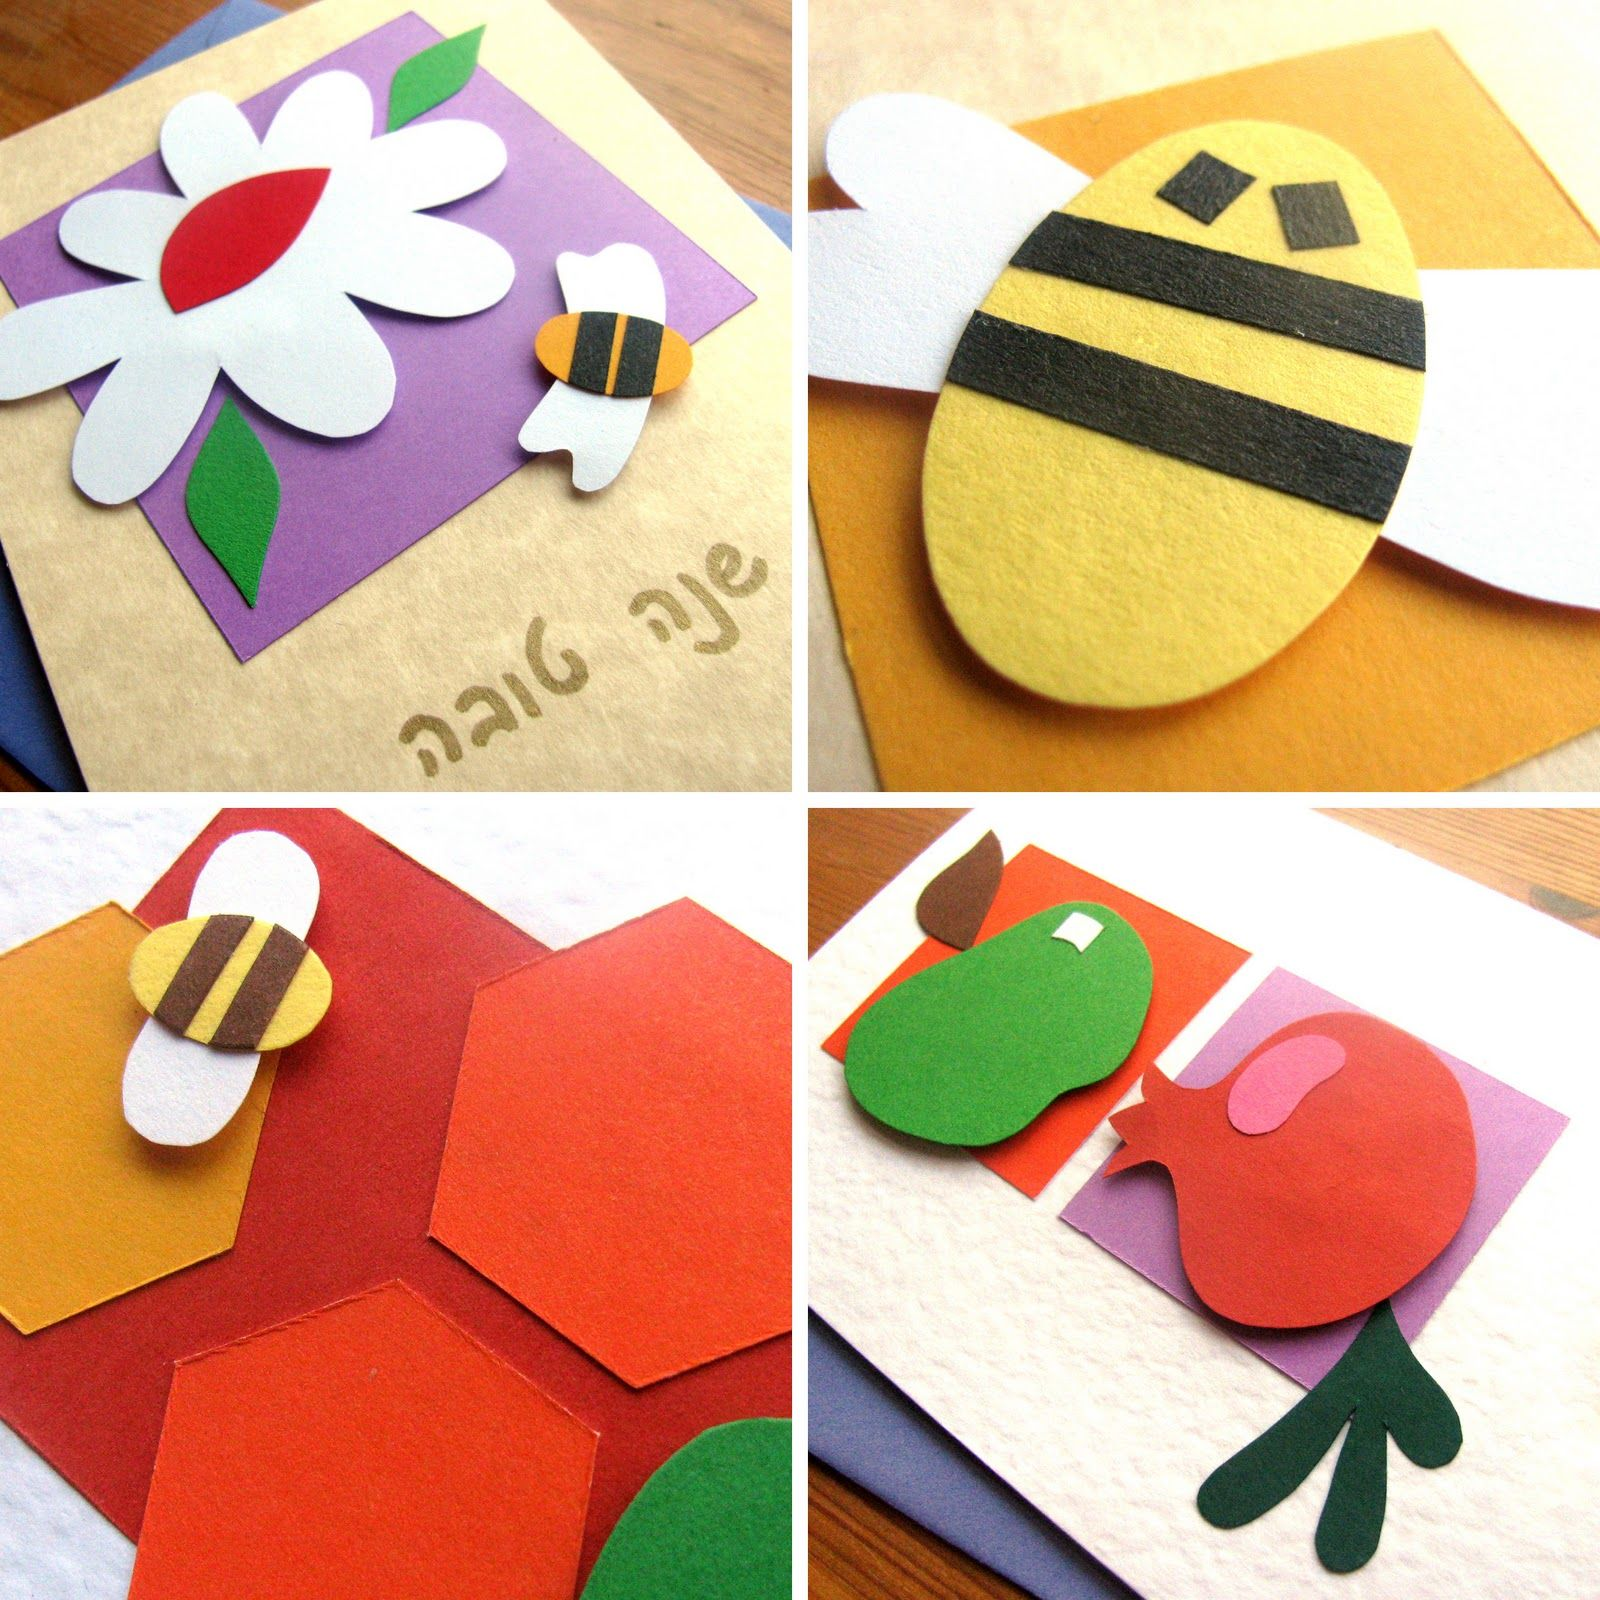 Handmade in israel september 2011 pinterest israel cut pieces of colored paper and glue together to make rosh hashanah symbols these would make nice place cards or greeting cards buycottarizona Images